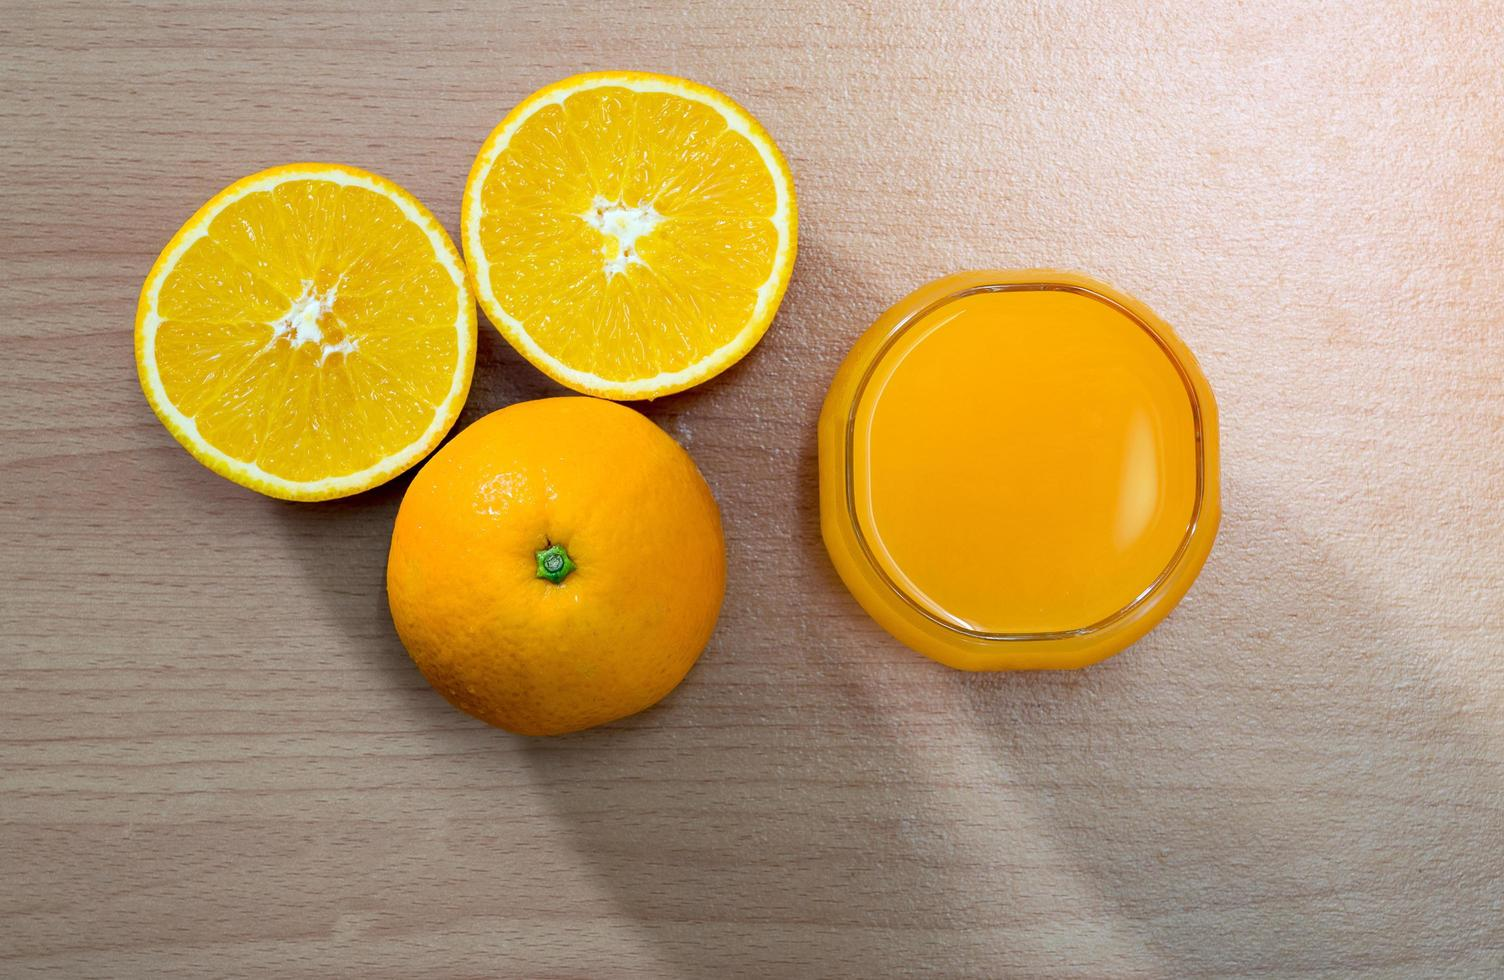 Top view of oranges next to a glass of juice photo